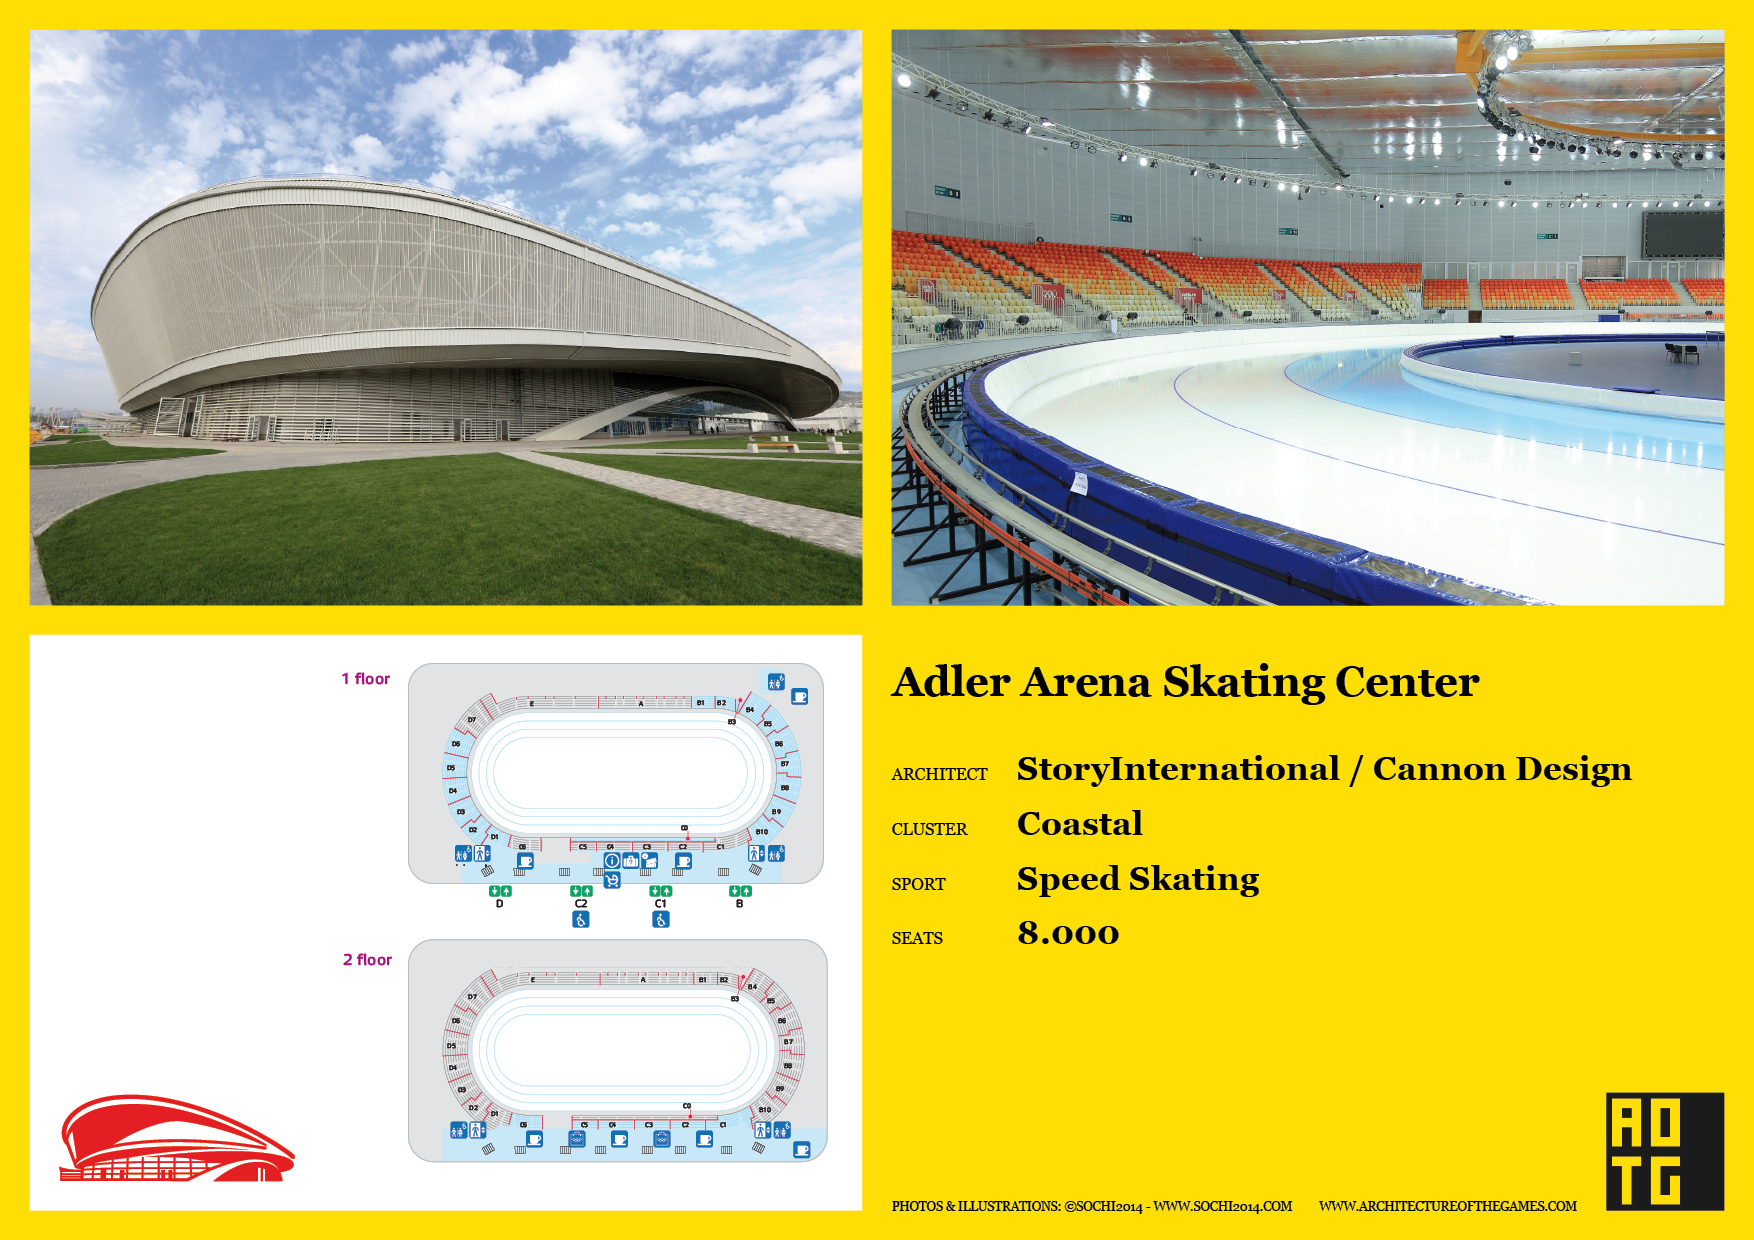 Adler Arena Skating Center